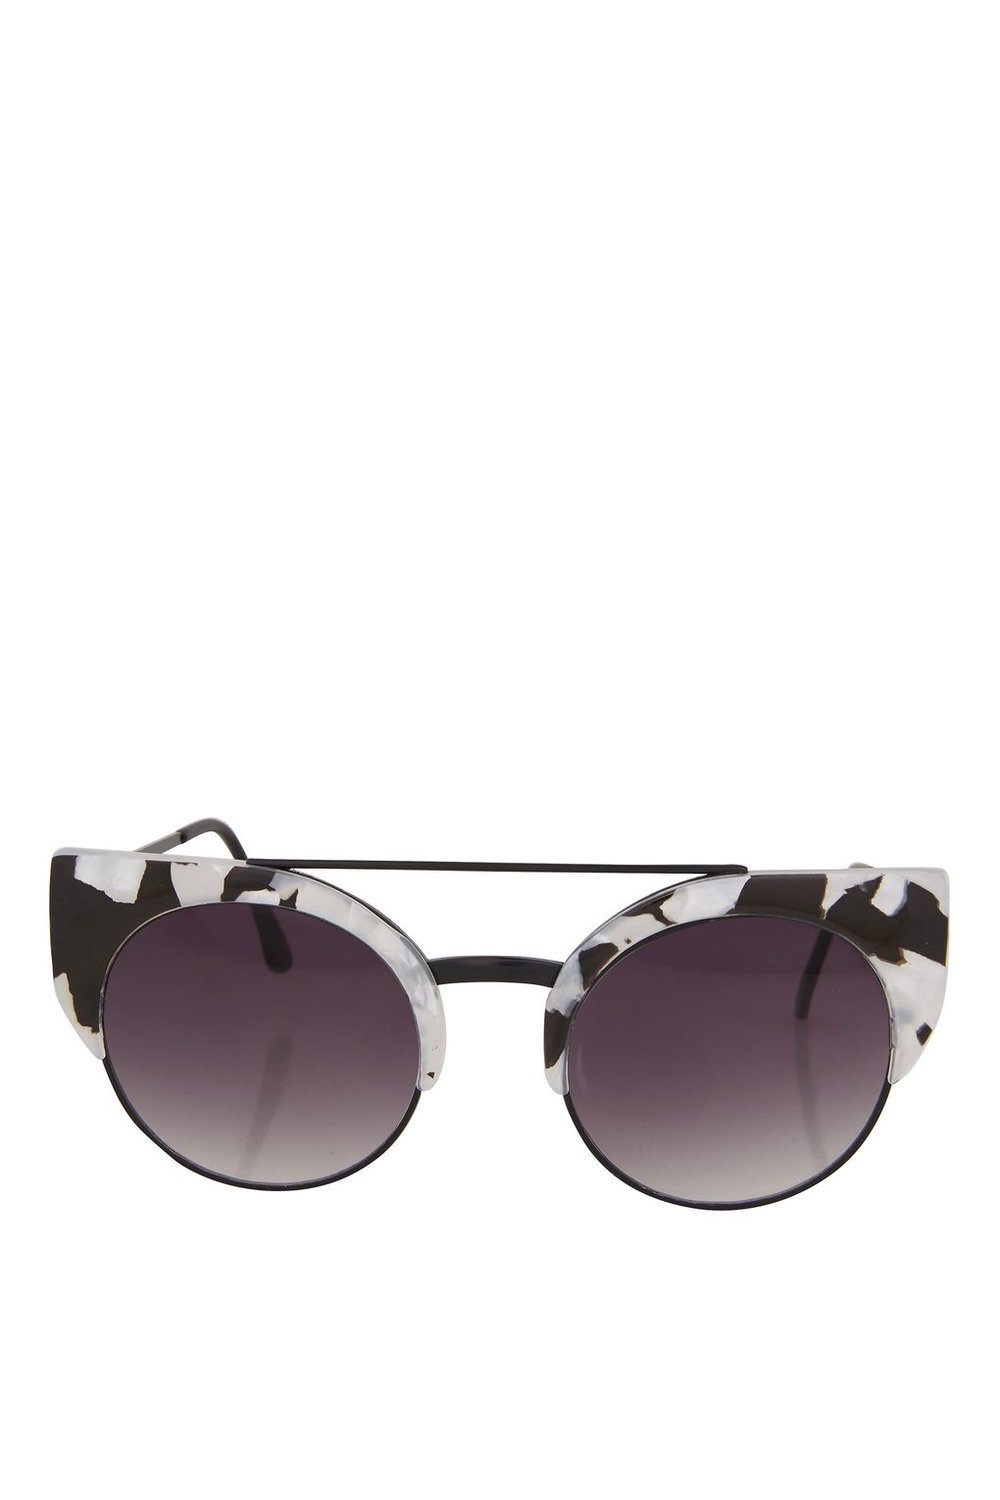 THE SHADES  Carrey Browbar Clubmaster Sunglasses from Topshop £18.00